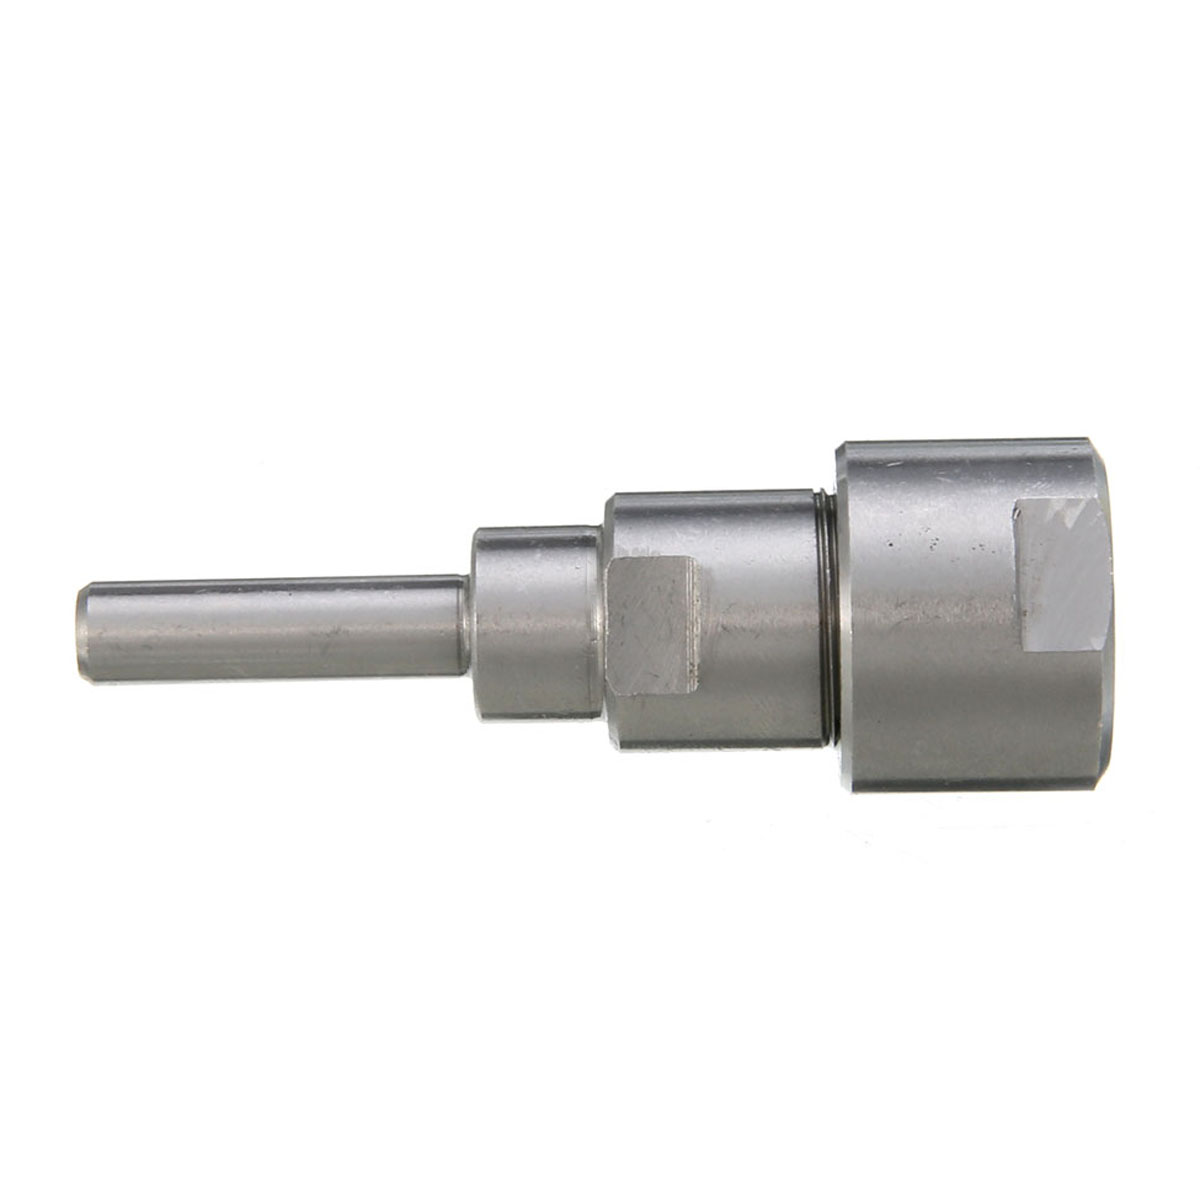 1PC 8mm Shank Router Bits Collet Extension Engraving Trimming Machine Chuck Extension Rod For Woodworking Milling Cutter